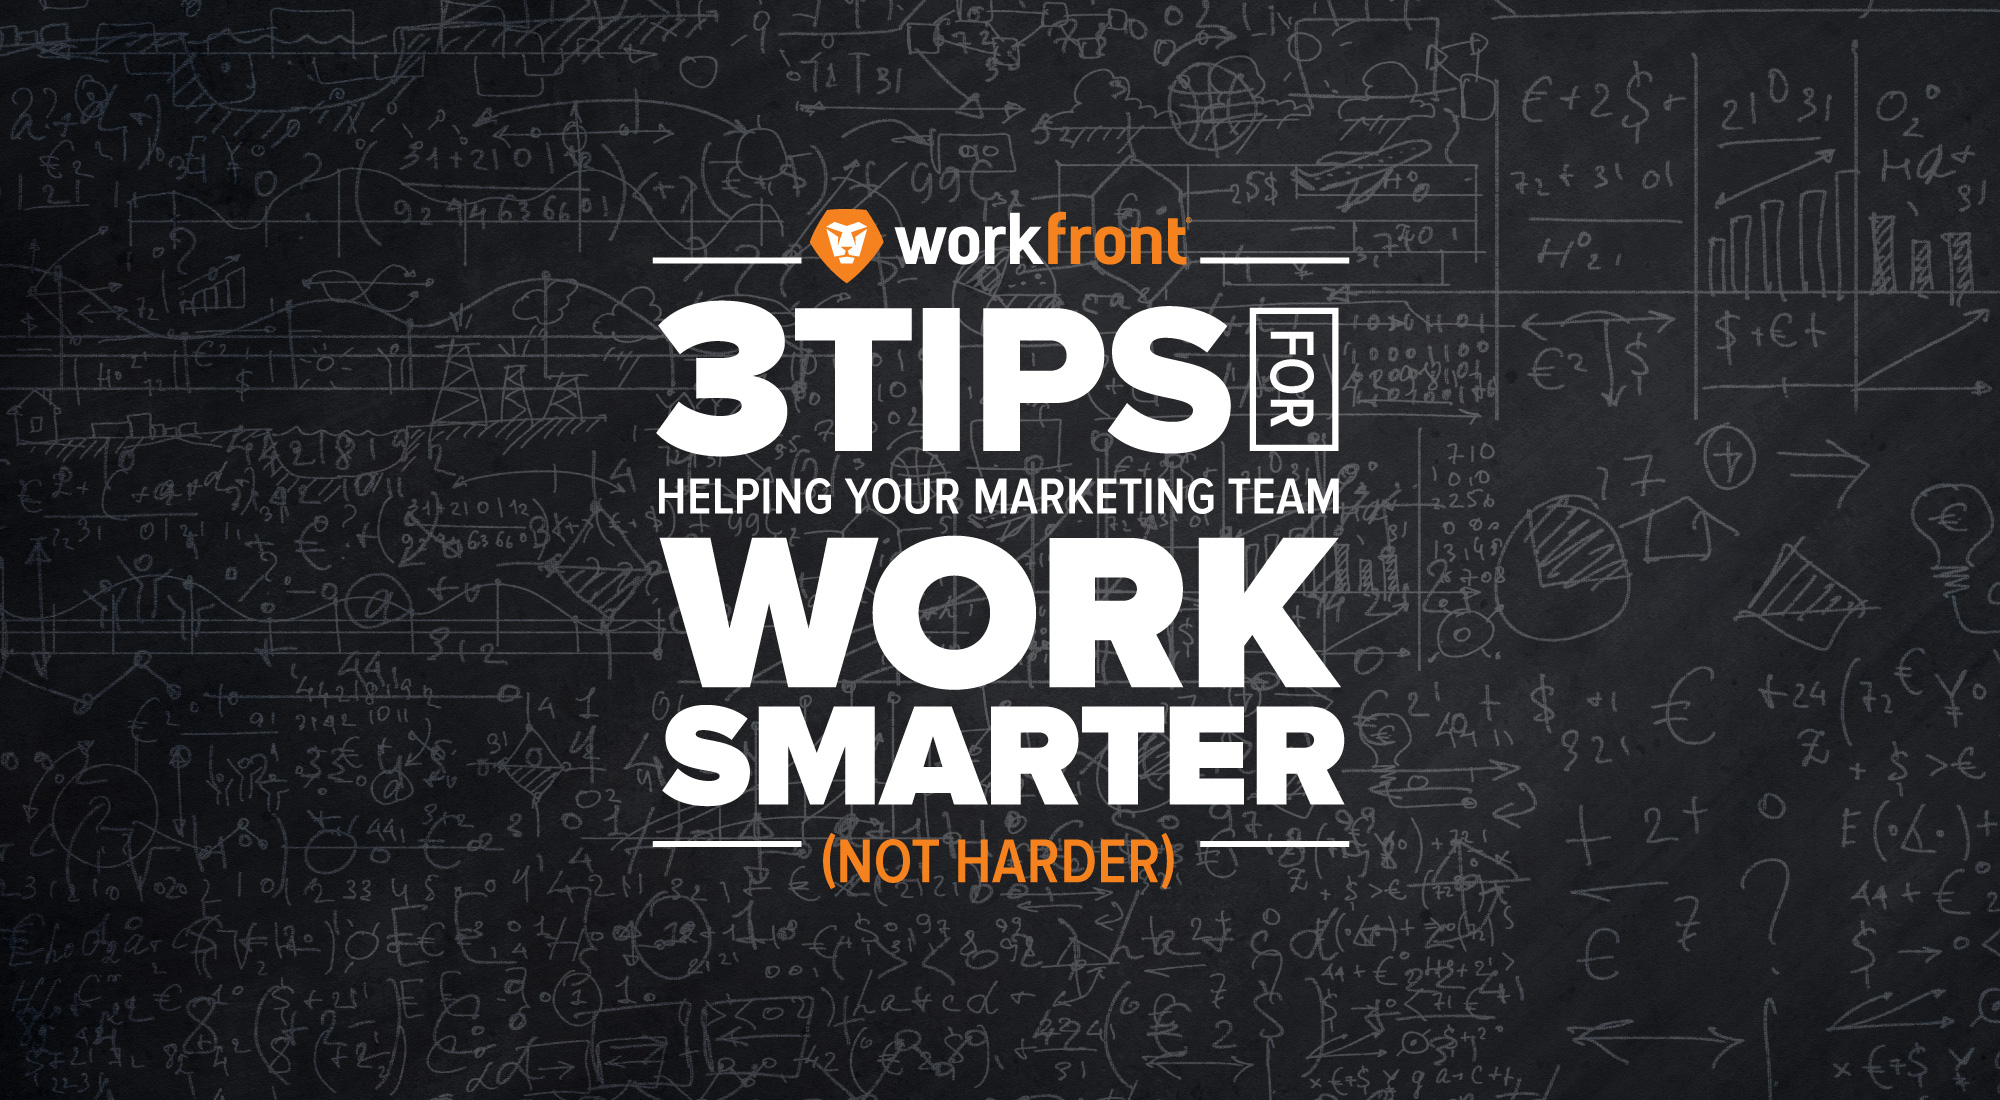 3 Tips for Helping Your Marketing Team Work Smarter (Not Harder)